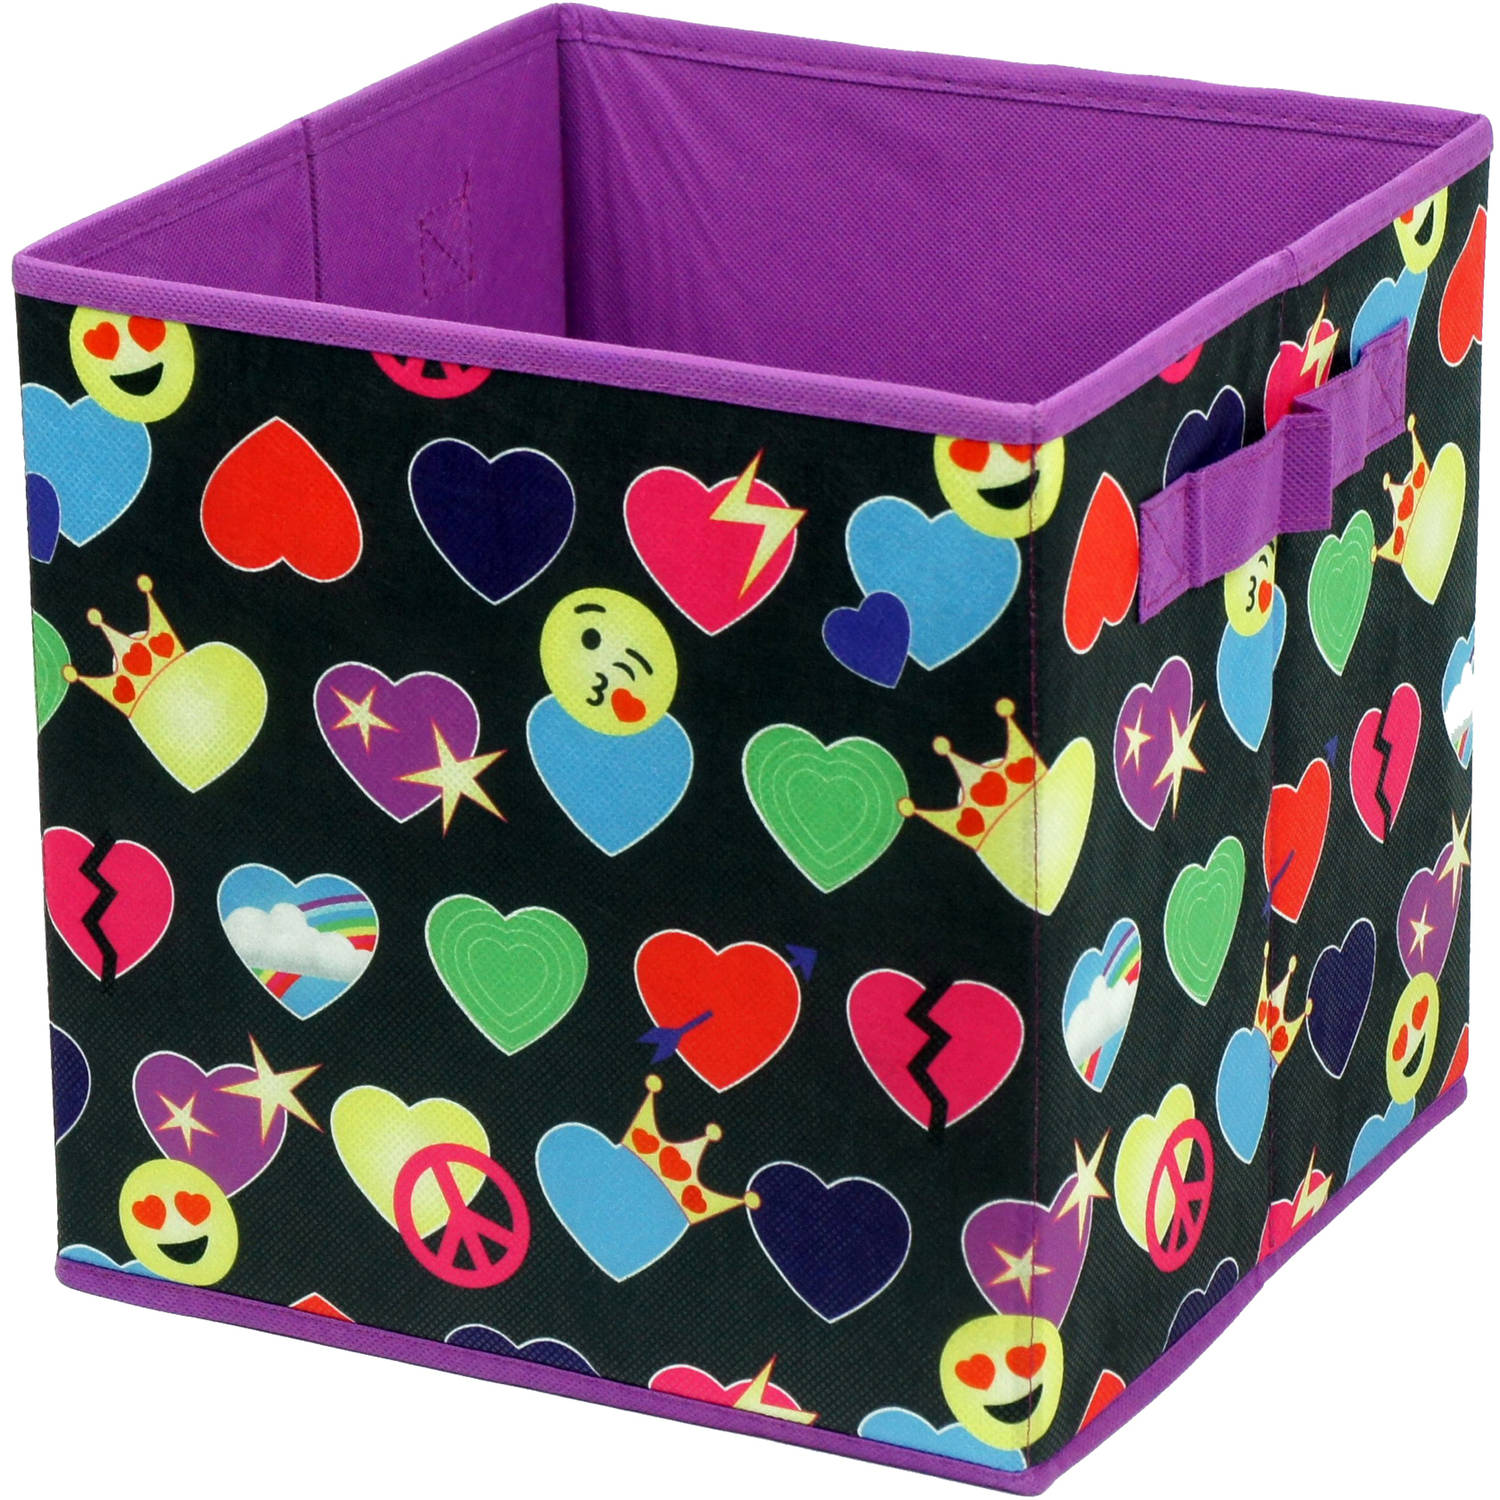 EmojiPals All Over Collapsible 2 Pack Soft Storage Cubes   Walmart.com